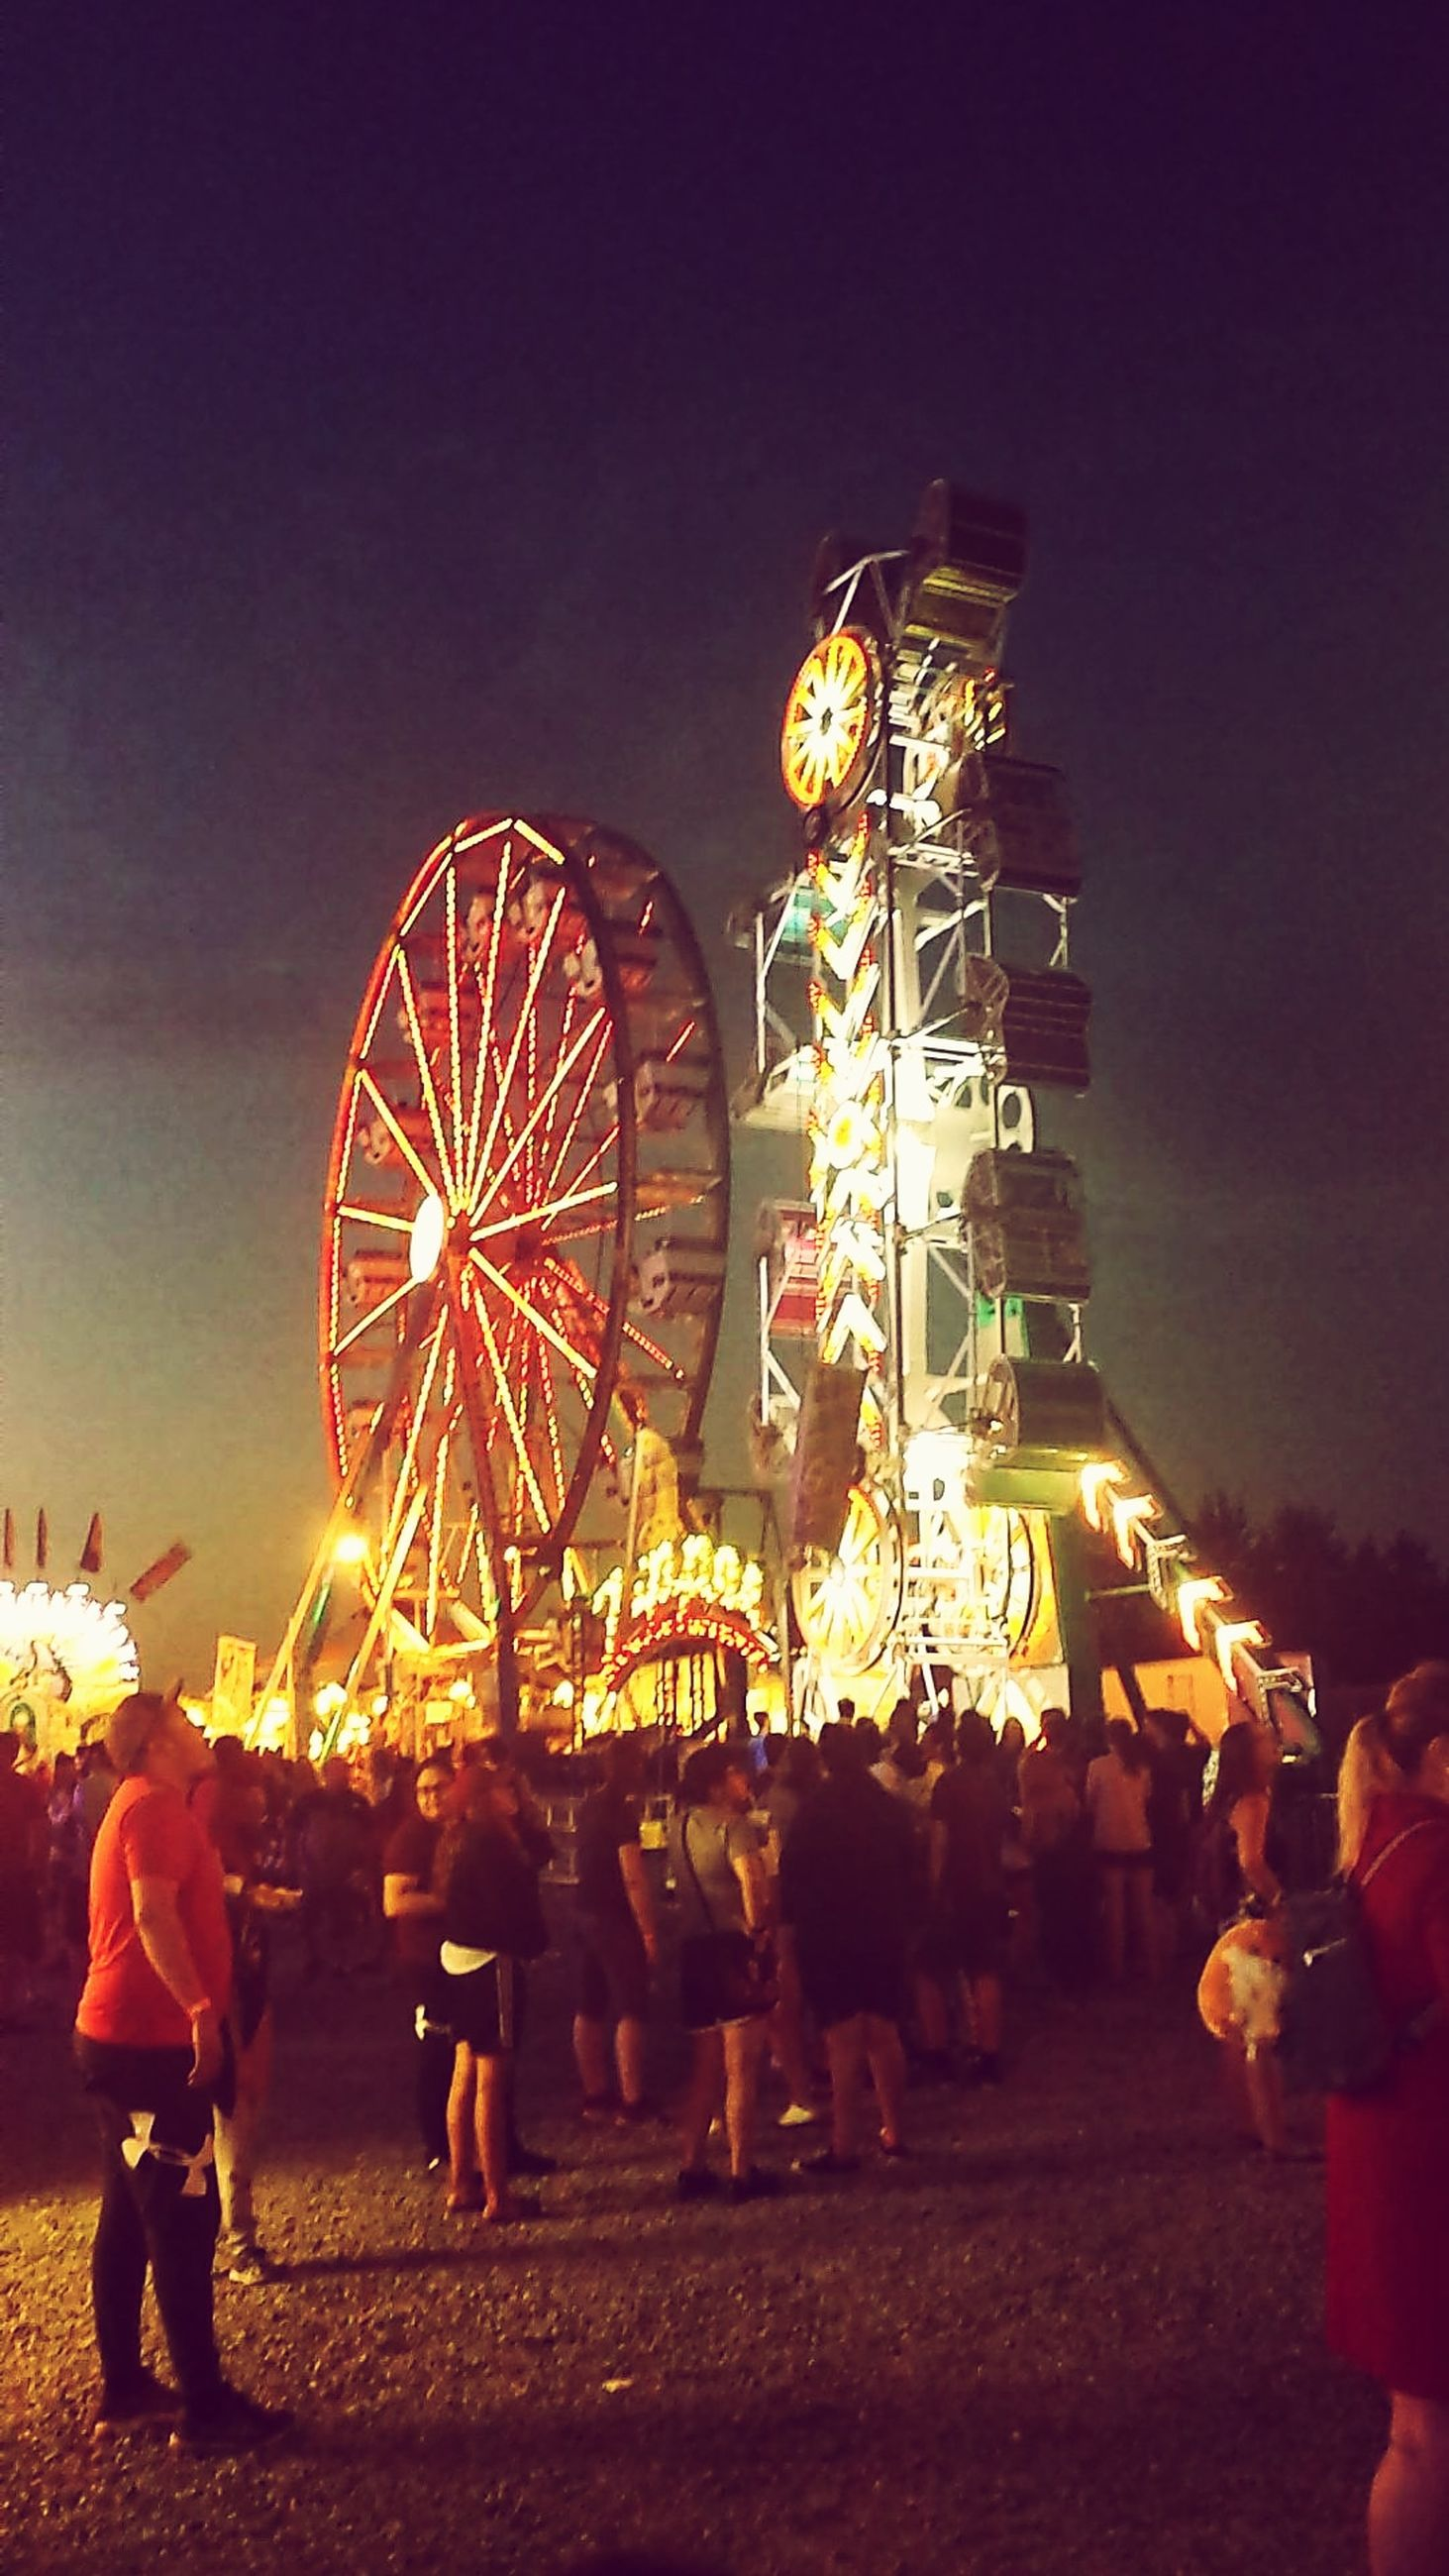 amusement park, amusement park ride, arts culture and entertainment, illuminated, group of people, ferris wheel, large group of people, night, real people, sky, crowd, leisure activity, enjoyment, motion, nature, women, outdoors, carnival, spinning, fairground, christmas market